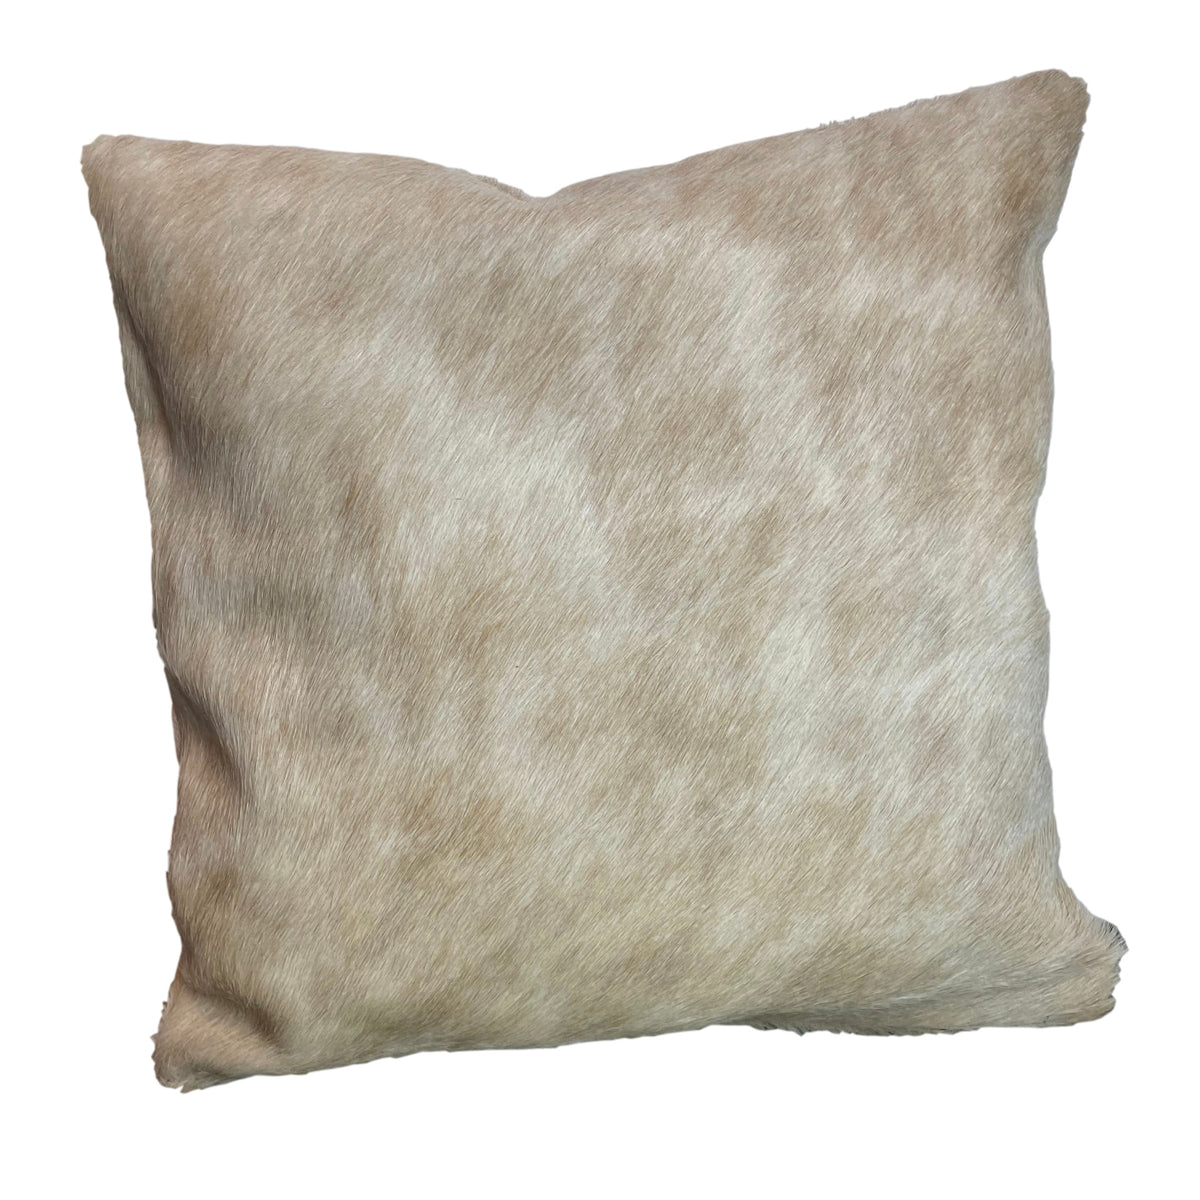 BEIGE COWHIDE CUSHION - IZEL DESIGNS